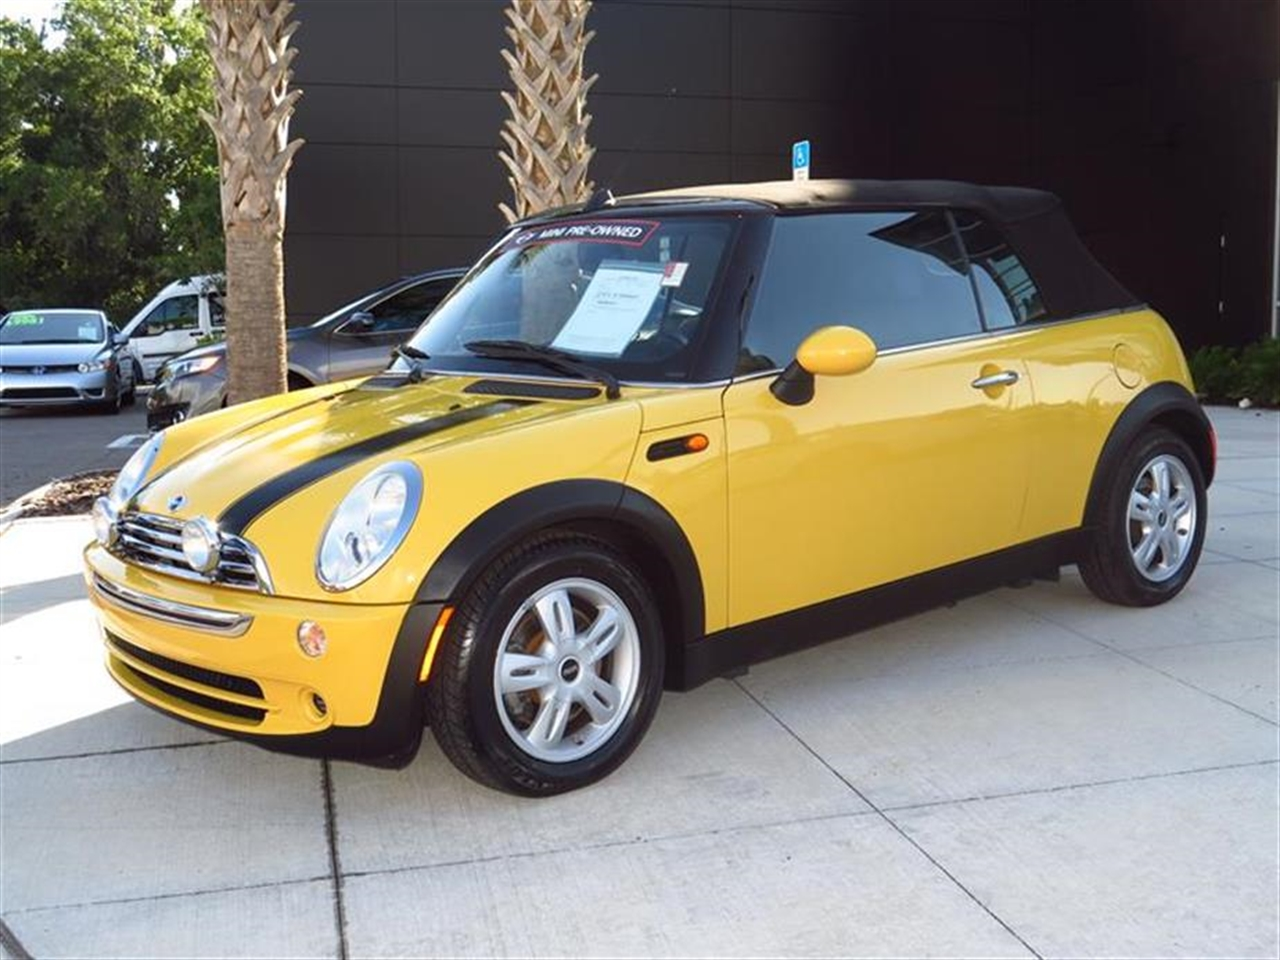 2008 MINI COOPER CONVERTIBLE 2dr 72643 miles 12V auxiliary pwr outlet in luggage compartment 505